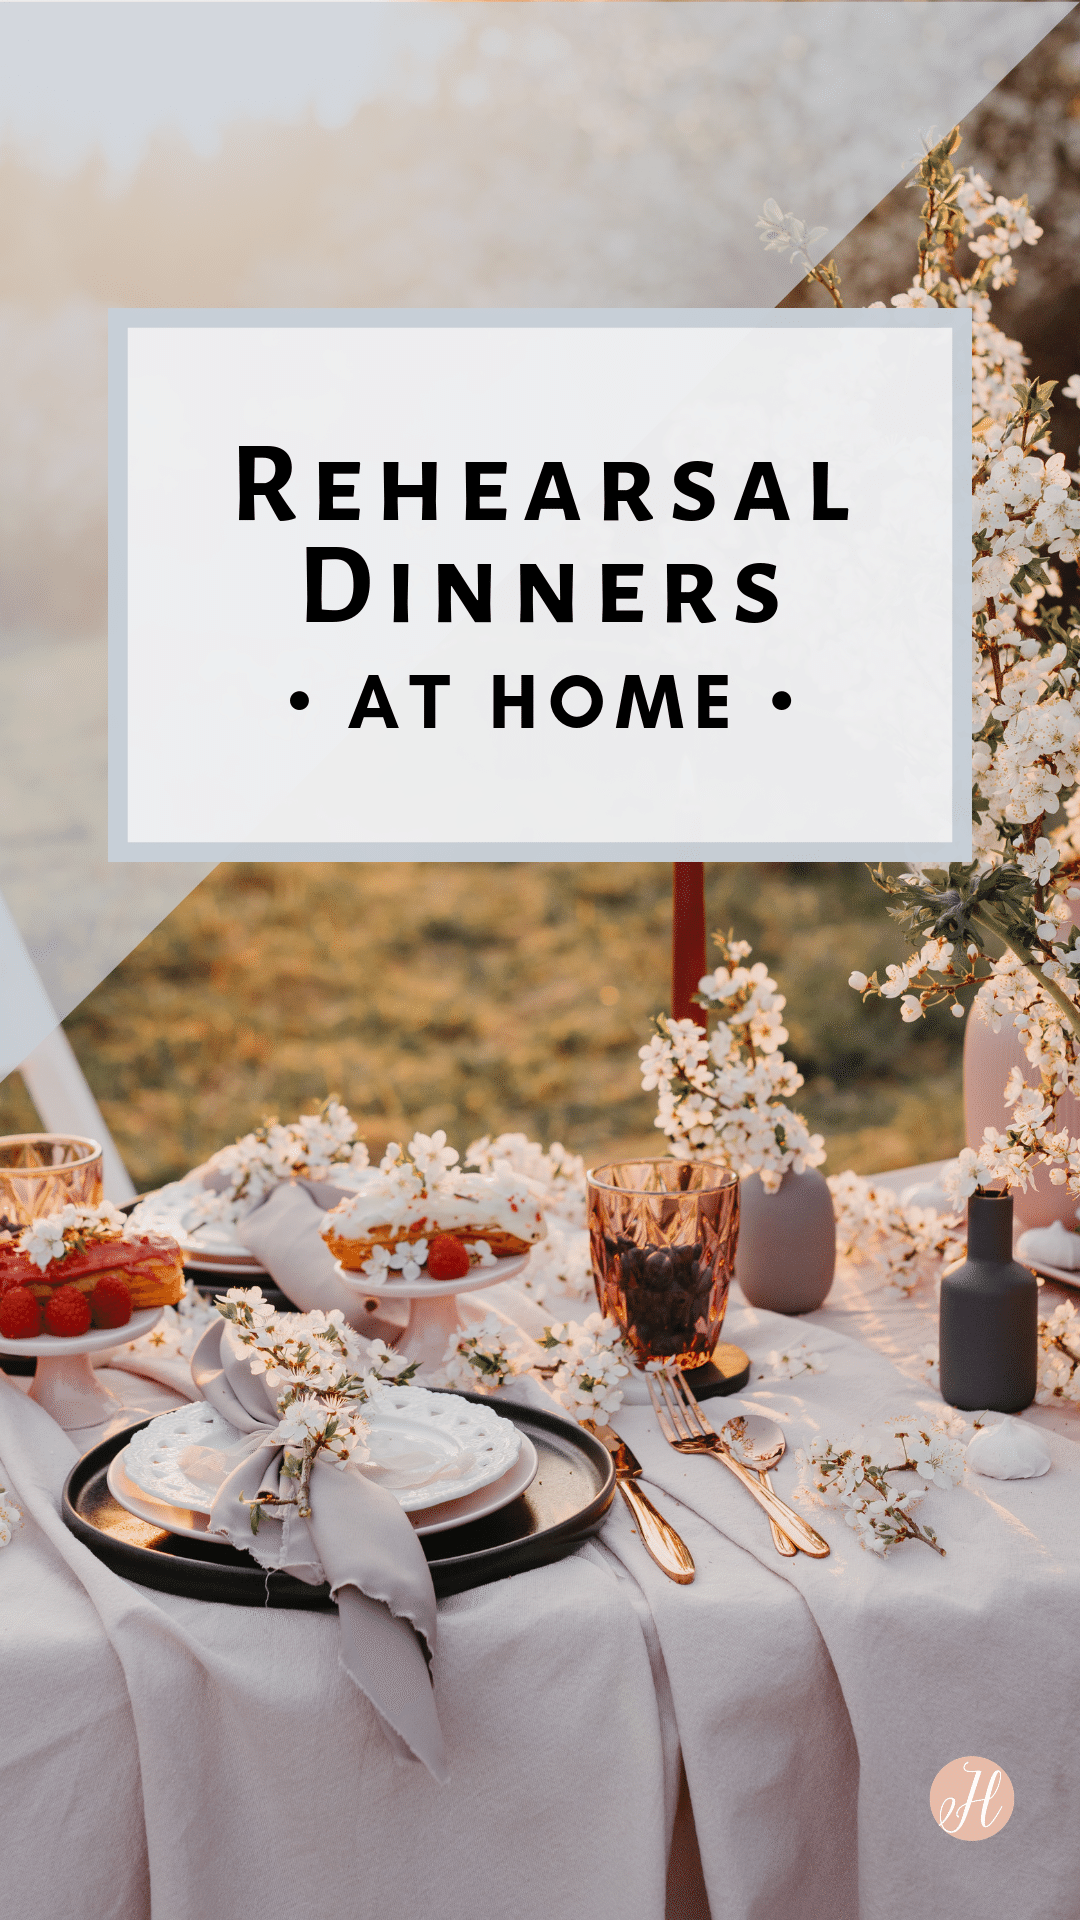 Rehearsal Dinner At Home How To Plan A Rehearsal Dinner At Your In 2020 Home Rehearsal Dinners Rehearsal Dinner Venues Rehearsal Dinners